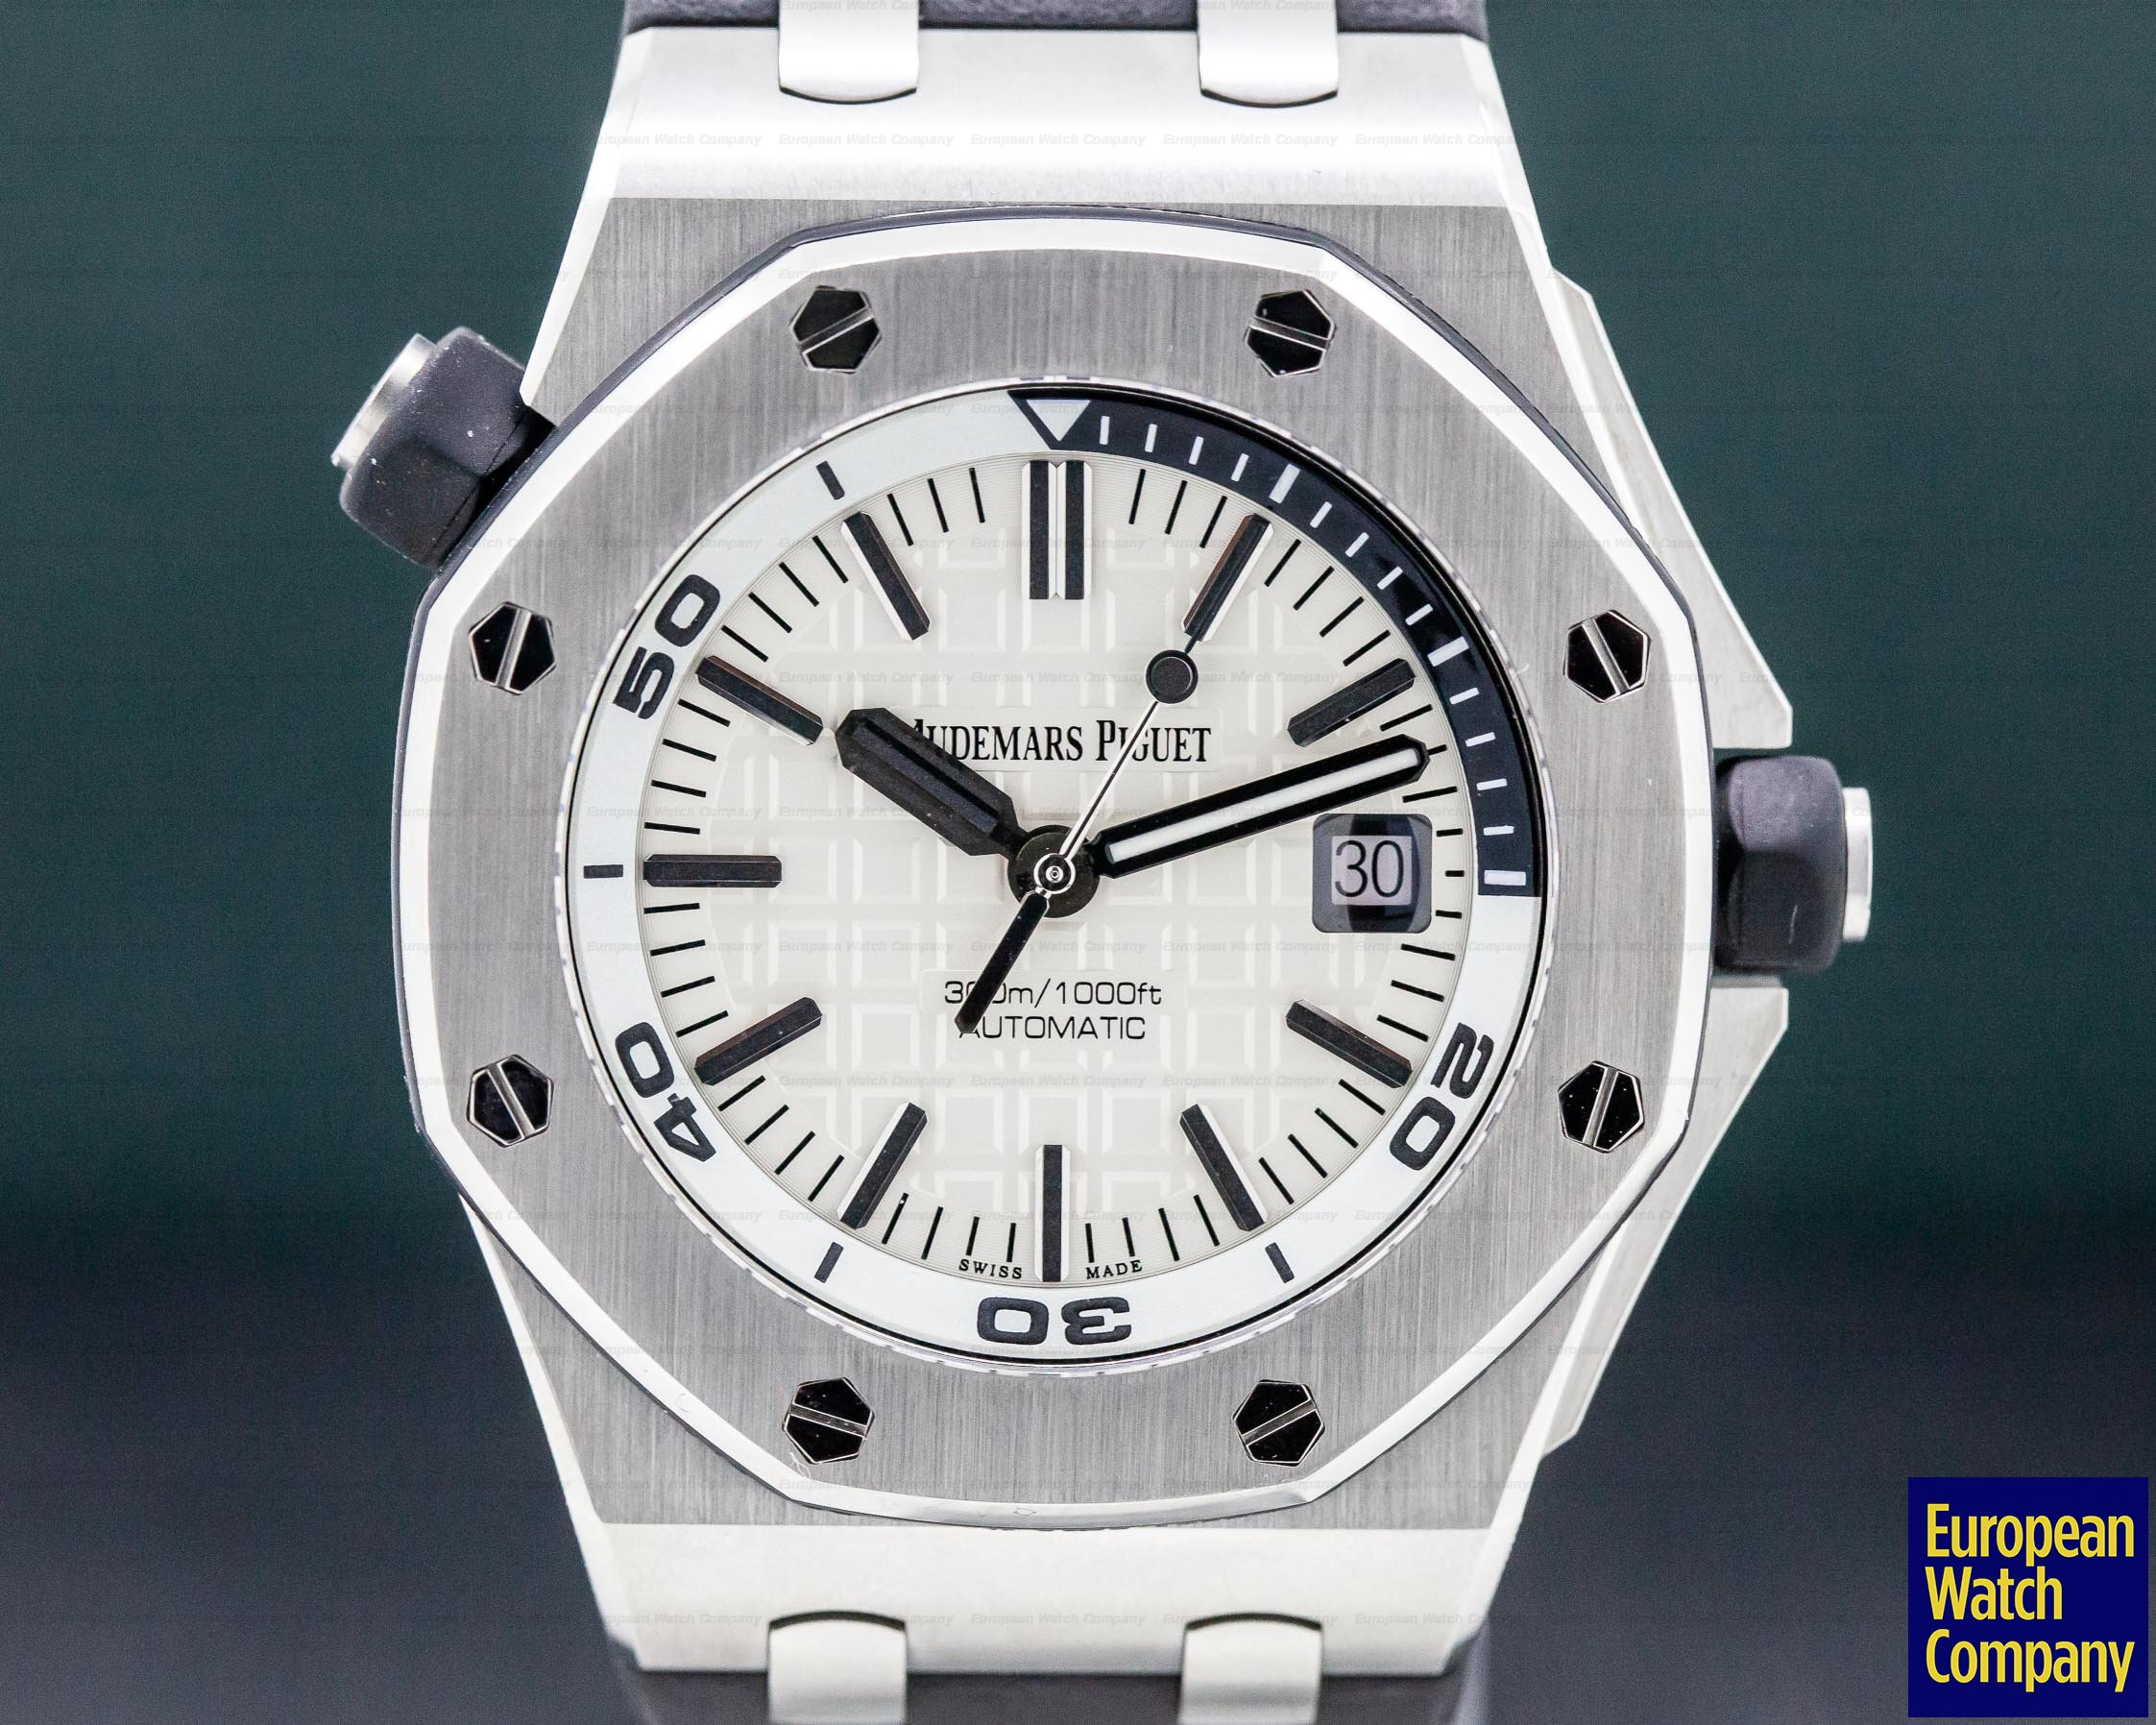 Audemars Piguet 15710ST.OO.A002CA.02 Royal Oak Offshore Diver White Dial